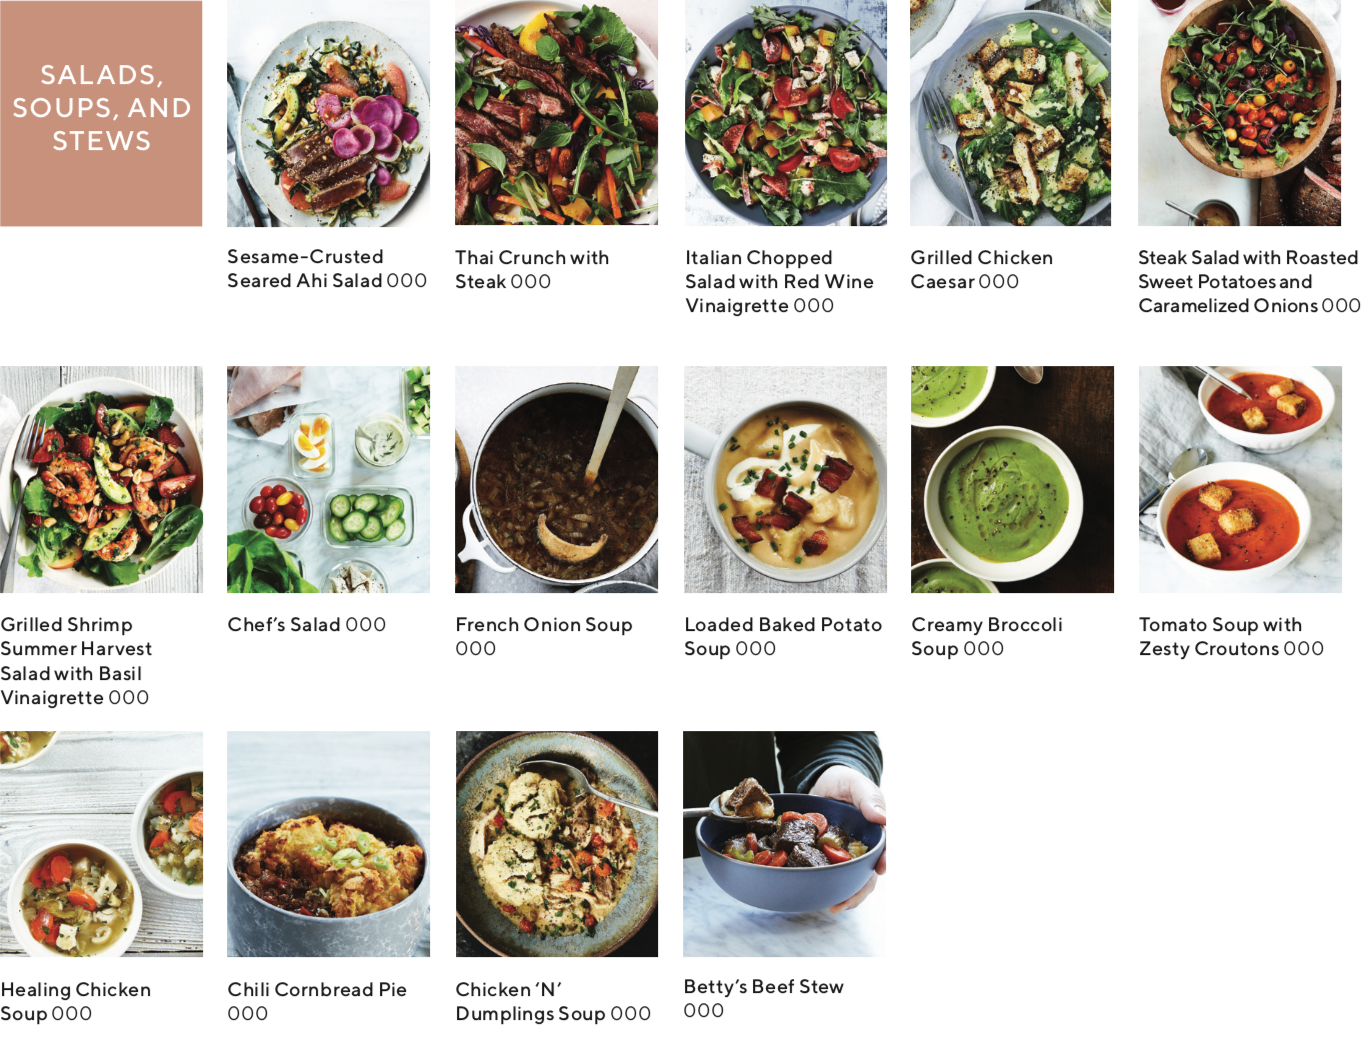 recipe index showing images of recipes that are soups salads and stews